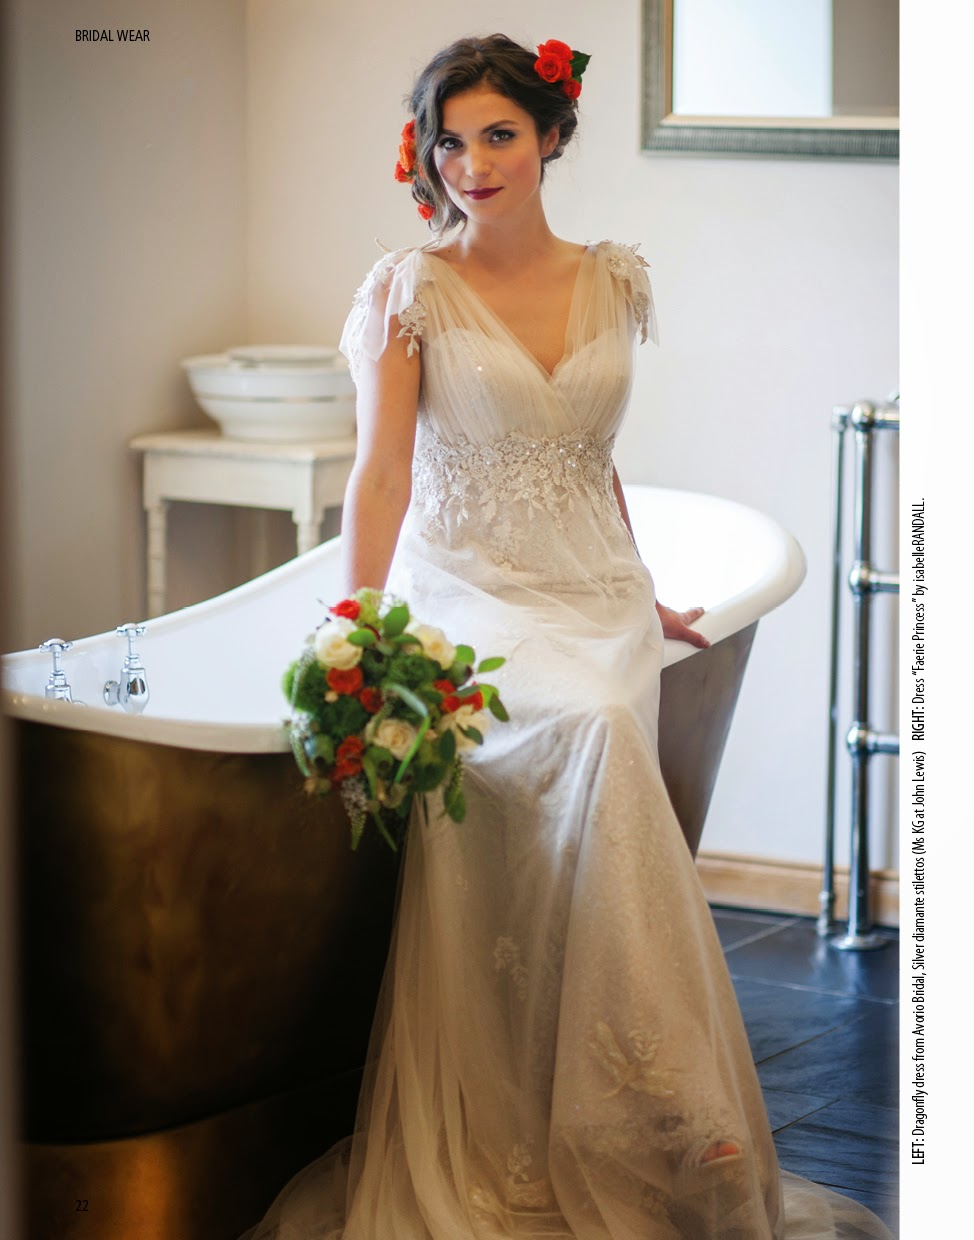 Autumnal bouquet and tousled hair with floral hair accessories compliment this Ian Stuart bridal gown